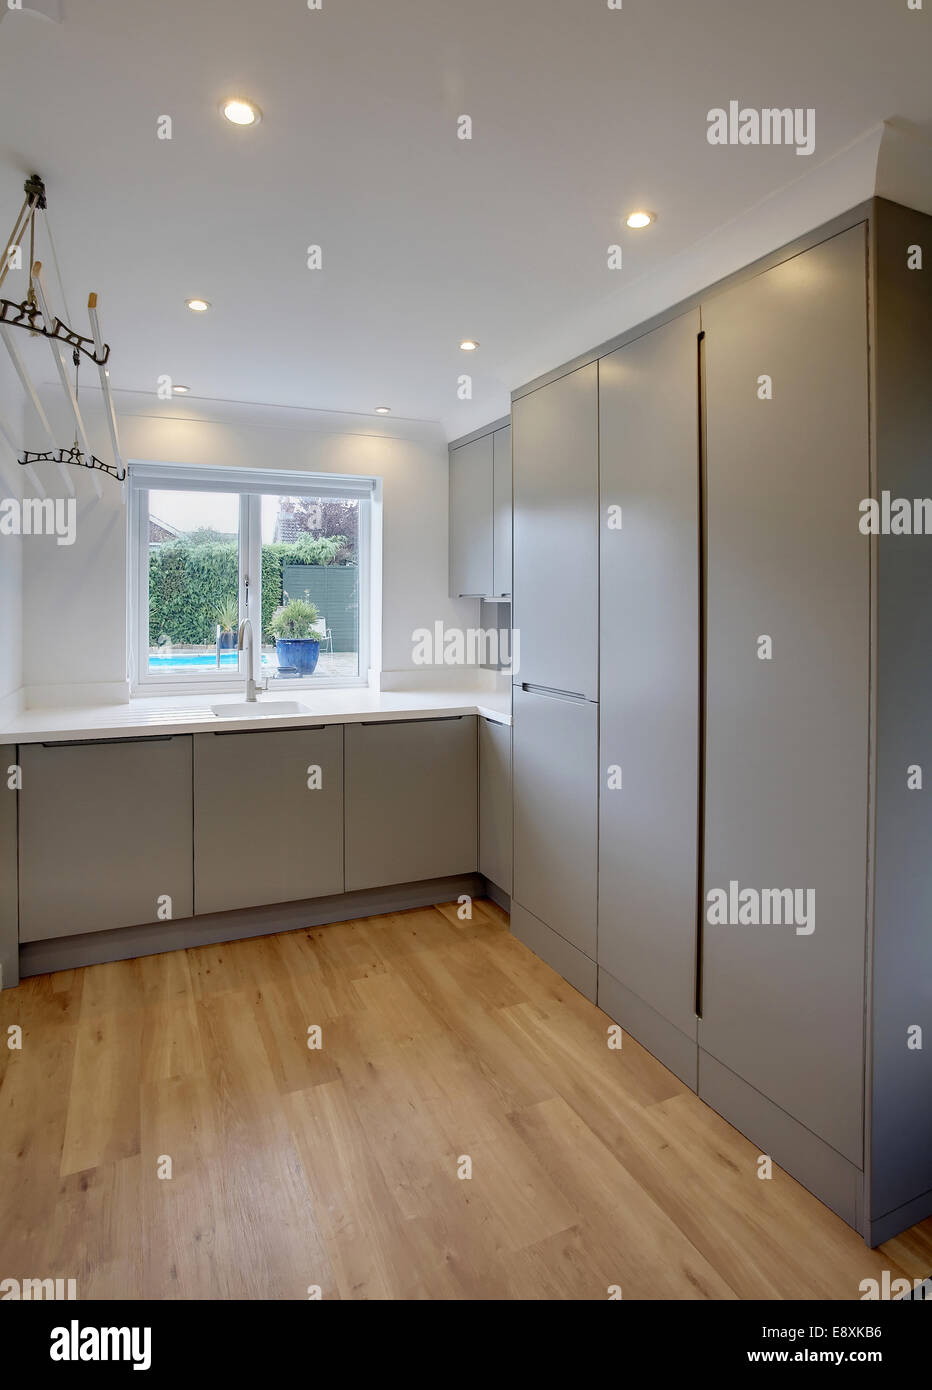 A utility room in a home in the UK with all the doors closed. & A utility room in a home in the UK with all the doors closed Stock ...